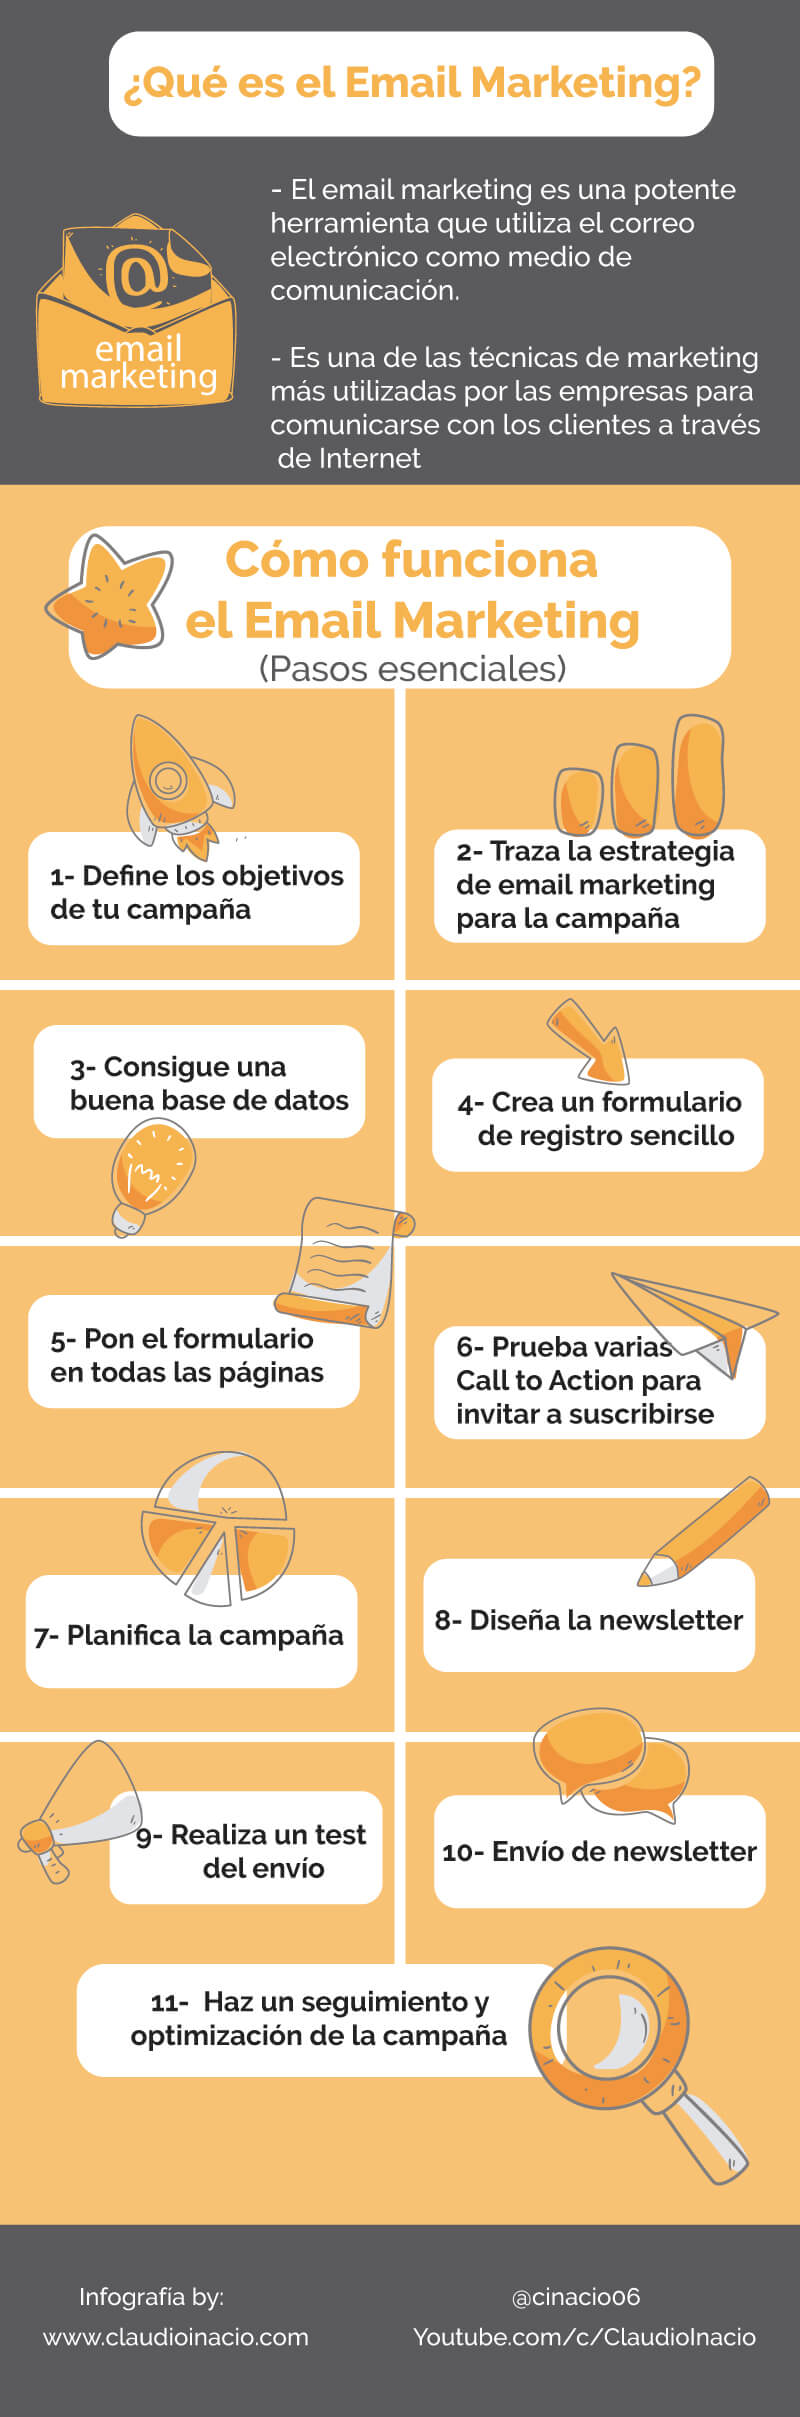 infografia cómo funciona el email marketing